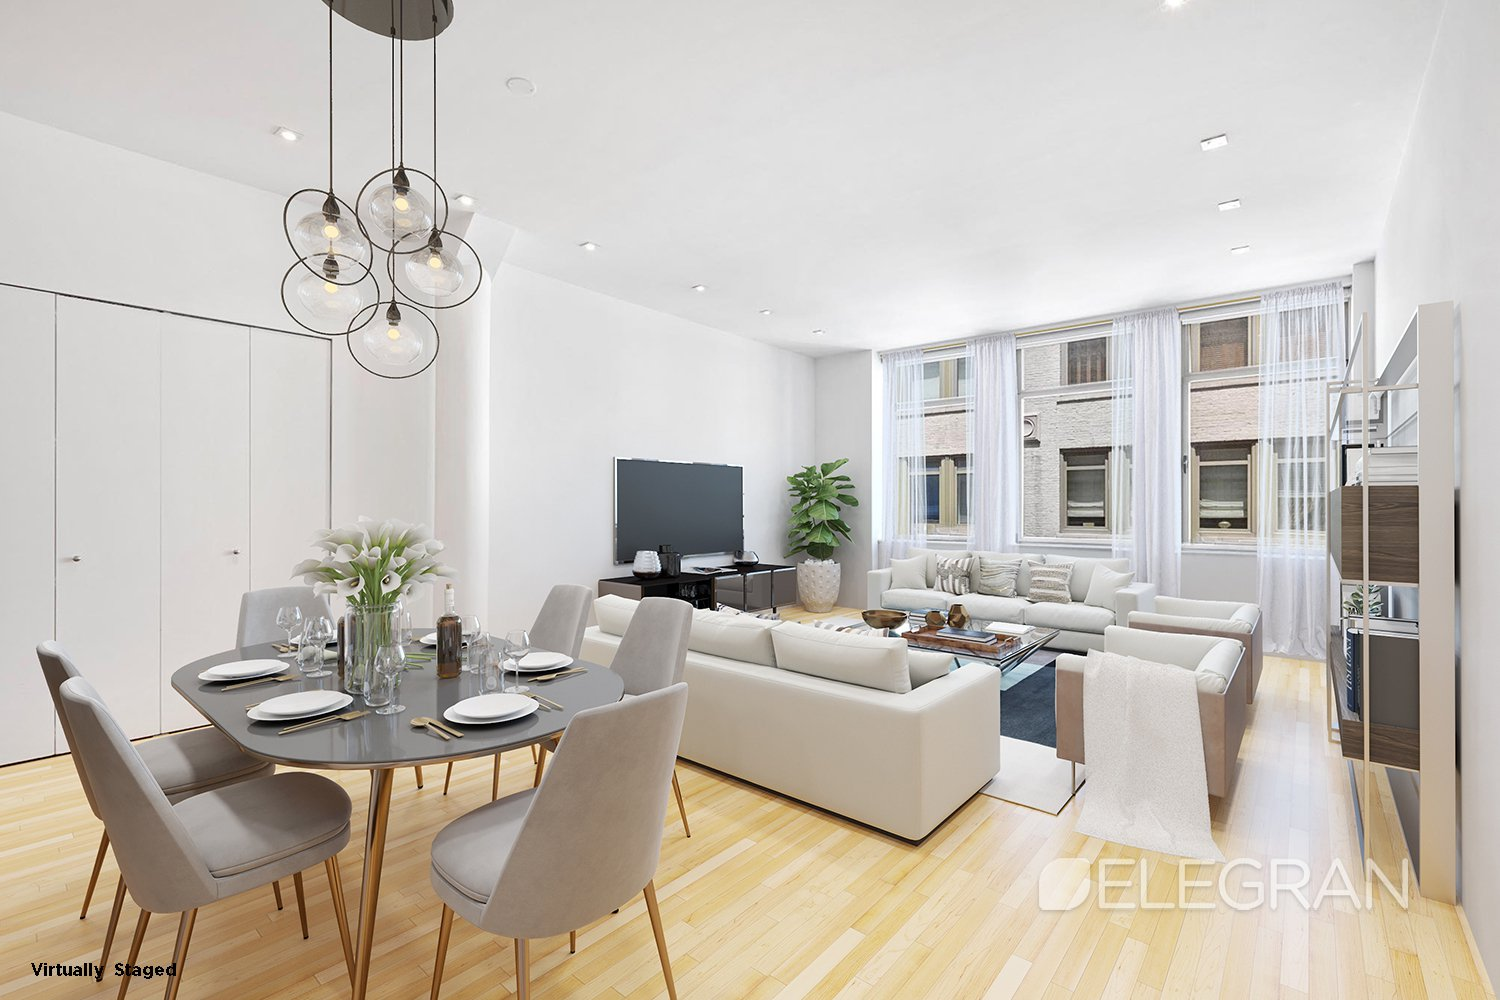 First showing Monday, 9/23!This beautiful 1,055 sq ft loft-style one bedroom has soaring ceiling height with pre-war charm! Renovated open kitchen and bathroom with hard-wood floors throughout the largest, most coveted one-bedroom layout in the building.  Plus washer & dryer in unit, five closets and very low monthlies!The Chelsea Mercantile features a newly renovated lobby, fitness center, playroom, rooftop deck with 360 panoramic city views and grills, valet service and storage units.  Located at 252 7th Avenue, this amazing pre-war Chelsea condo building has Whole Foods on the ground floor and is close to great restaurants and five subway lines (1, C, E, F & M).Call for an appointment today!